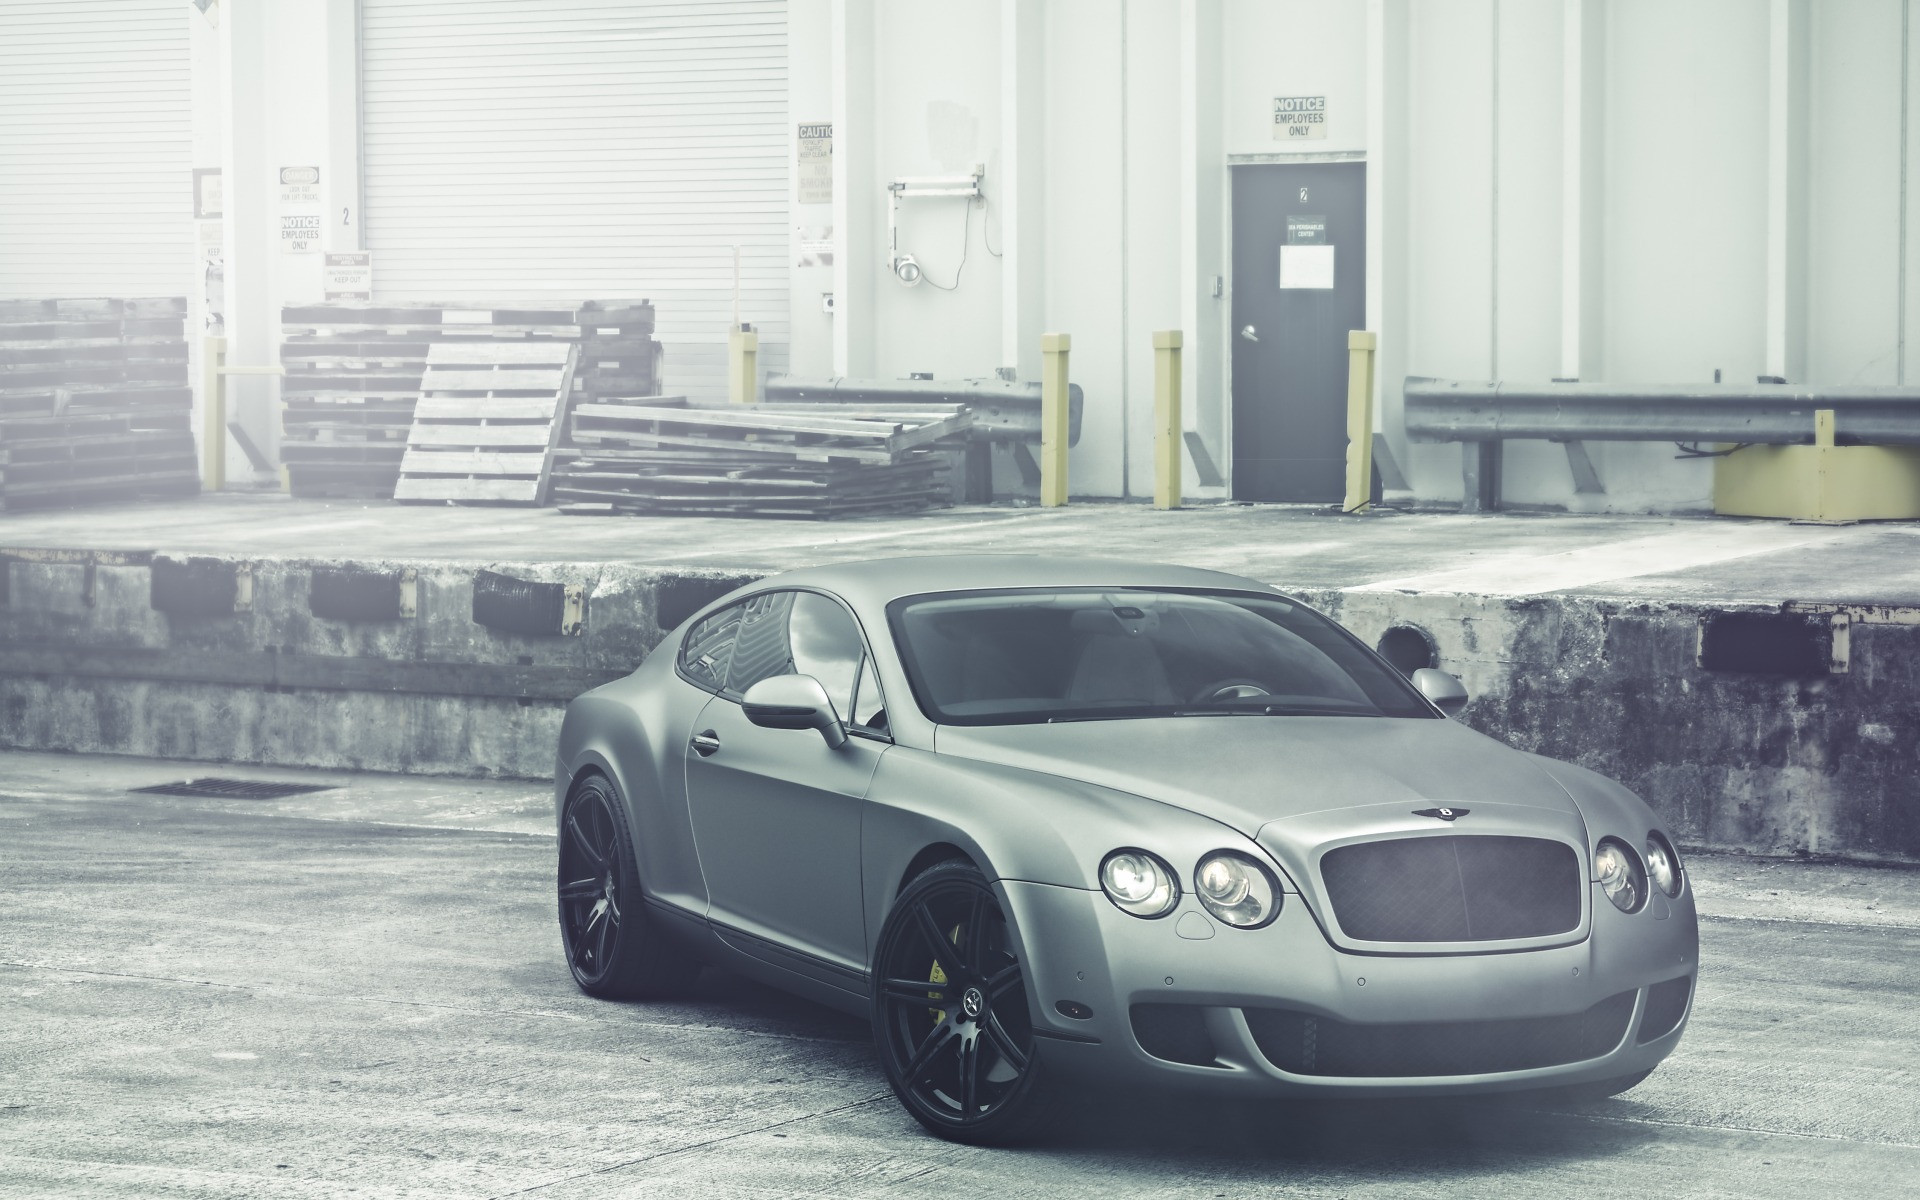 herunterladen 1920x1080 full hd hintergrundbilder bentley continental grau matt lagerung. Black Bedroom Furniture Sets. Home Design Ideas